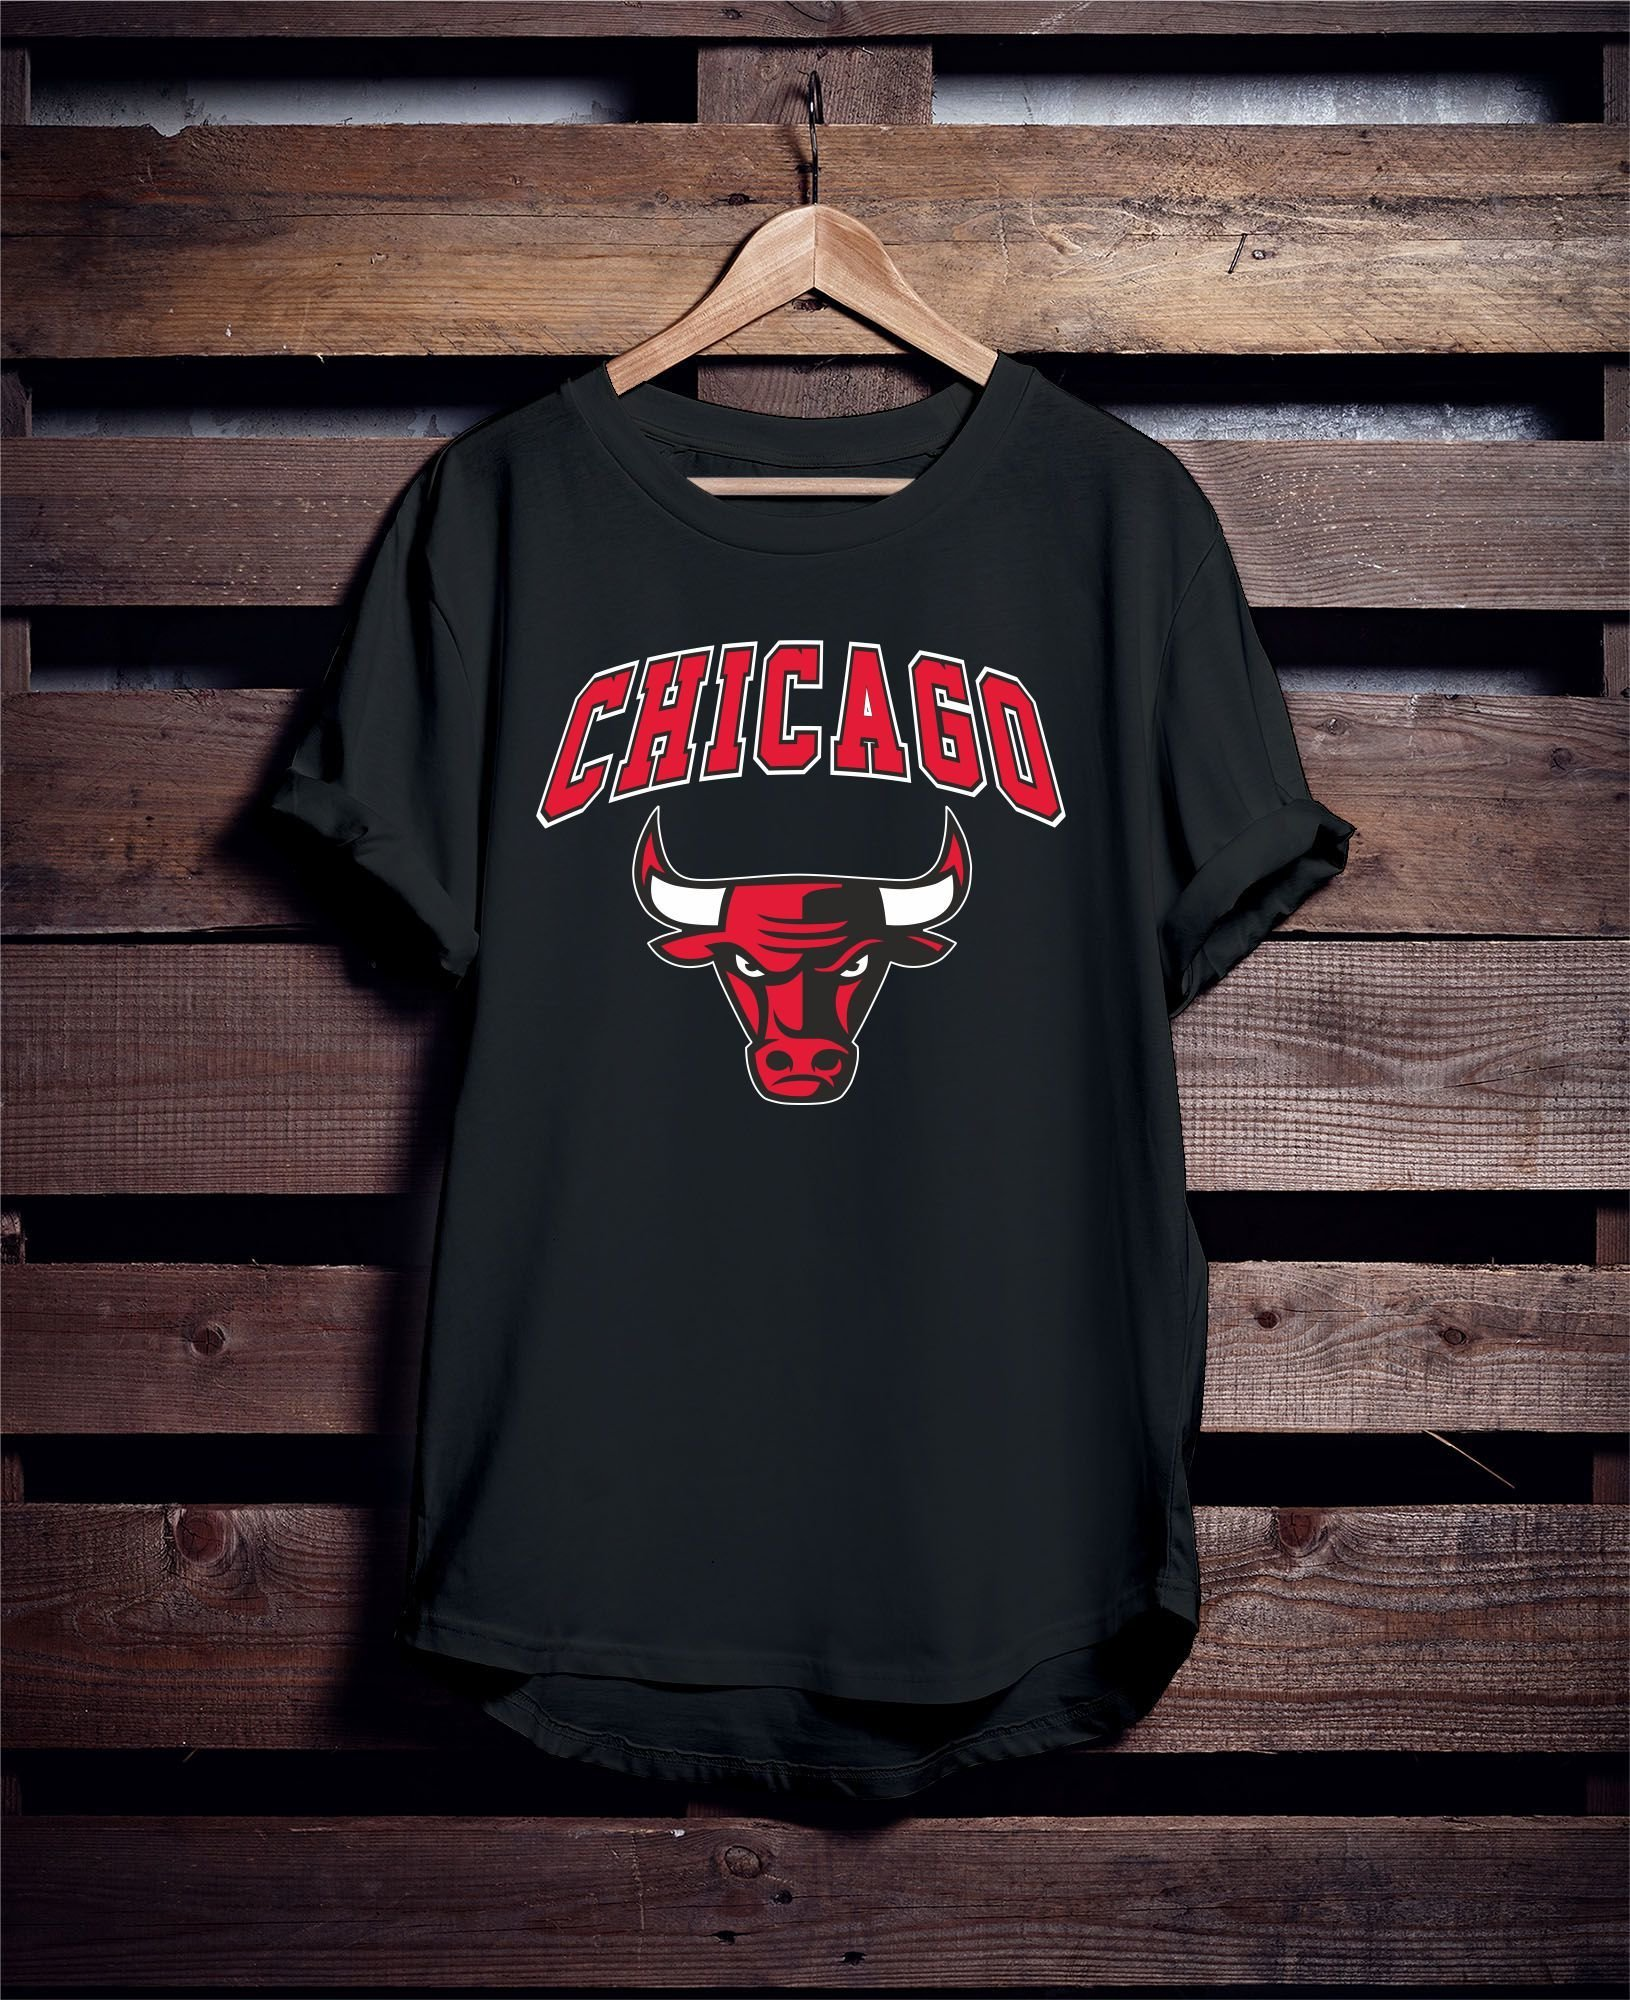 Chicago t-shirts 148